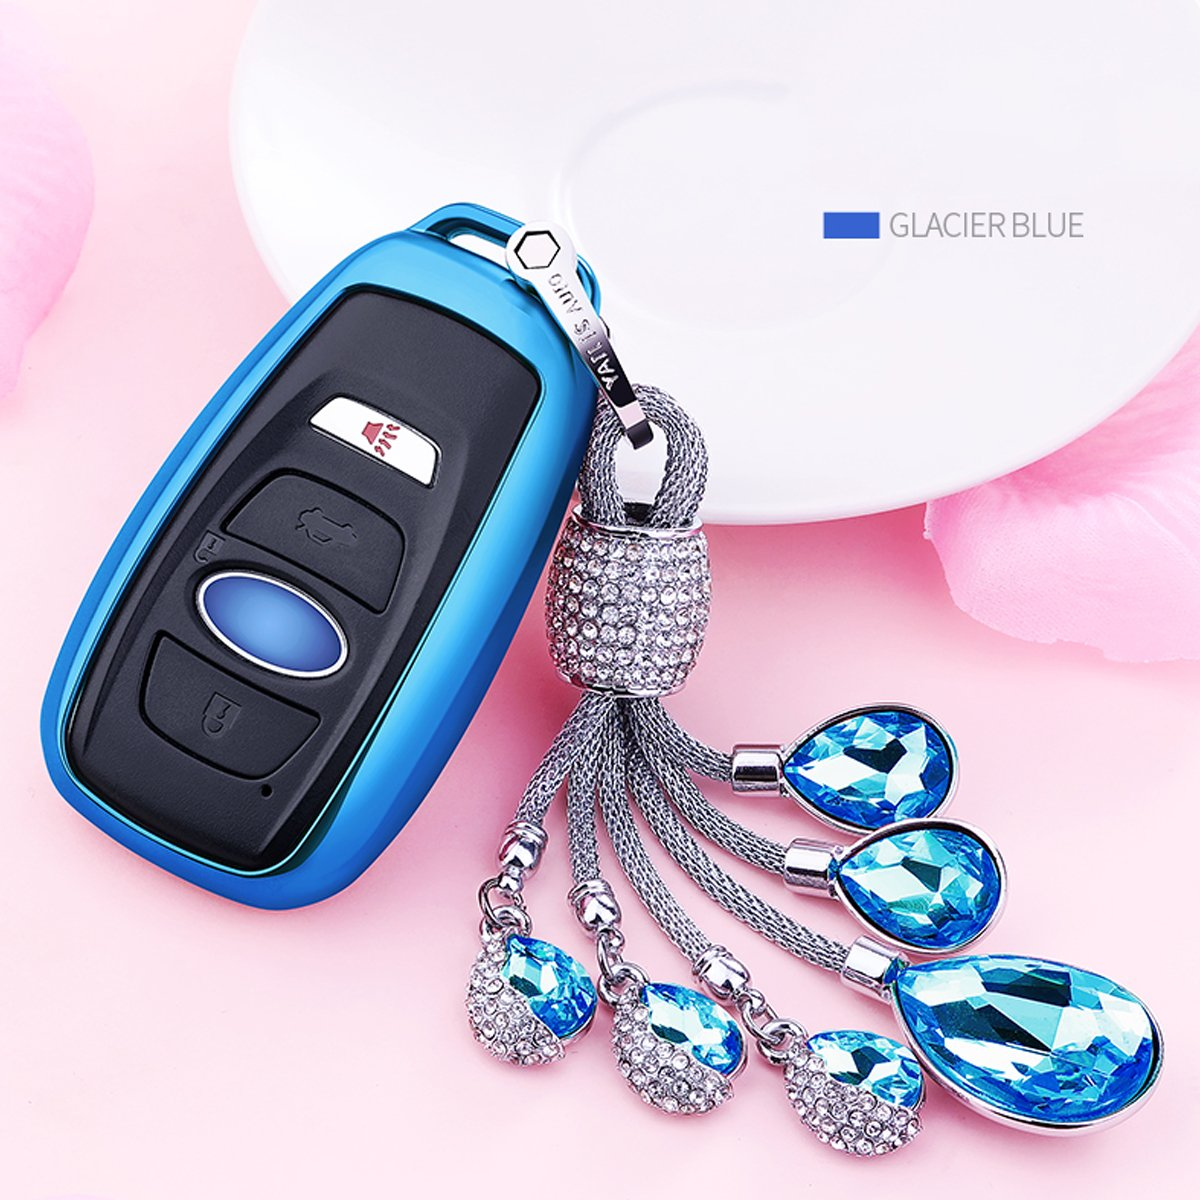 MODIPIM Keyless Entry Remote Cover Soft TPU Key Fob Case with Diamond Tassel Keychain for Subaru XV//Crosstrek Forester Outback Legacy BRZ 3//3+1 Buttons Smart Key Color Silver